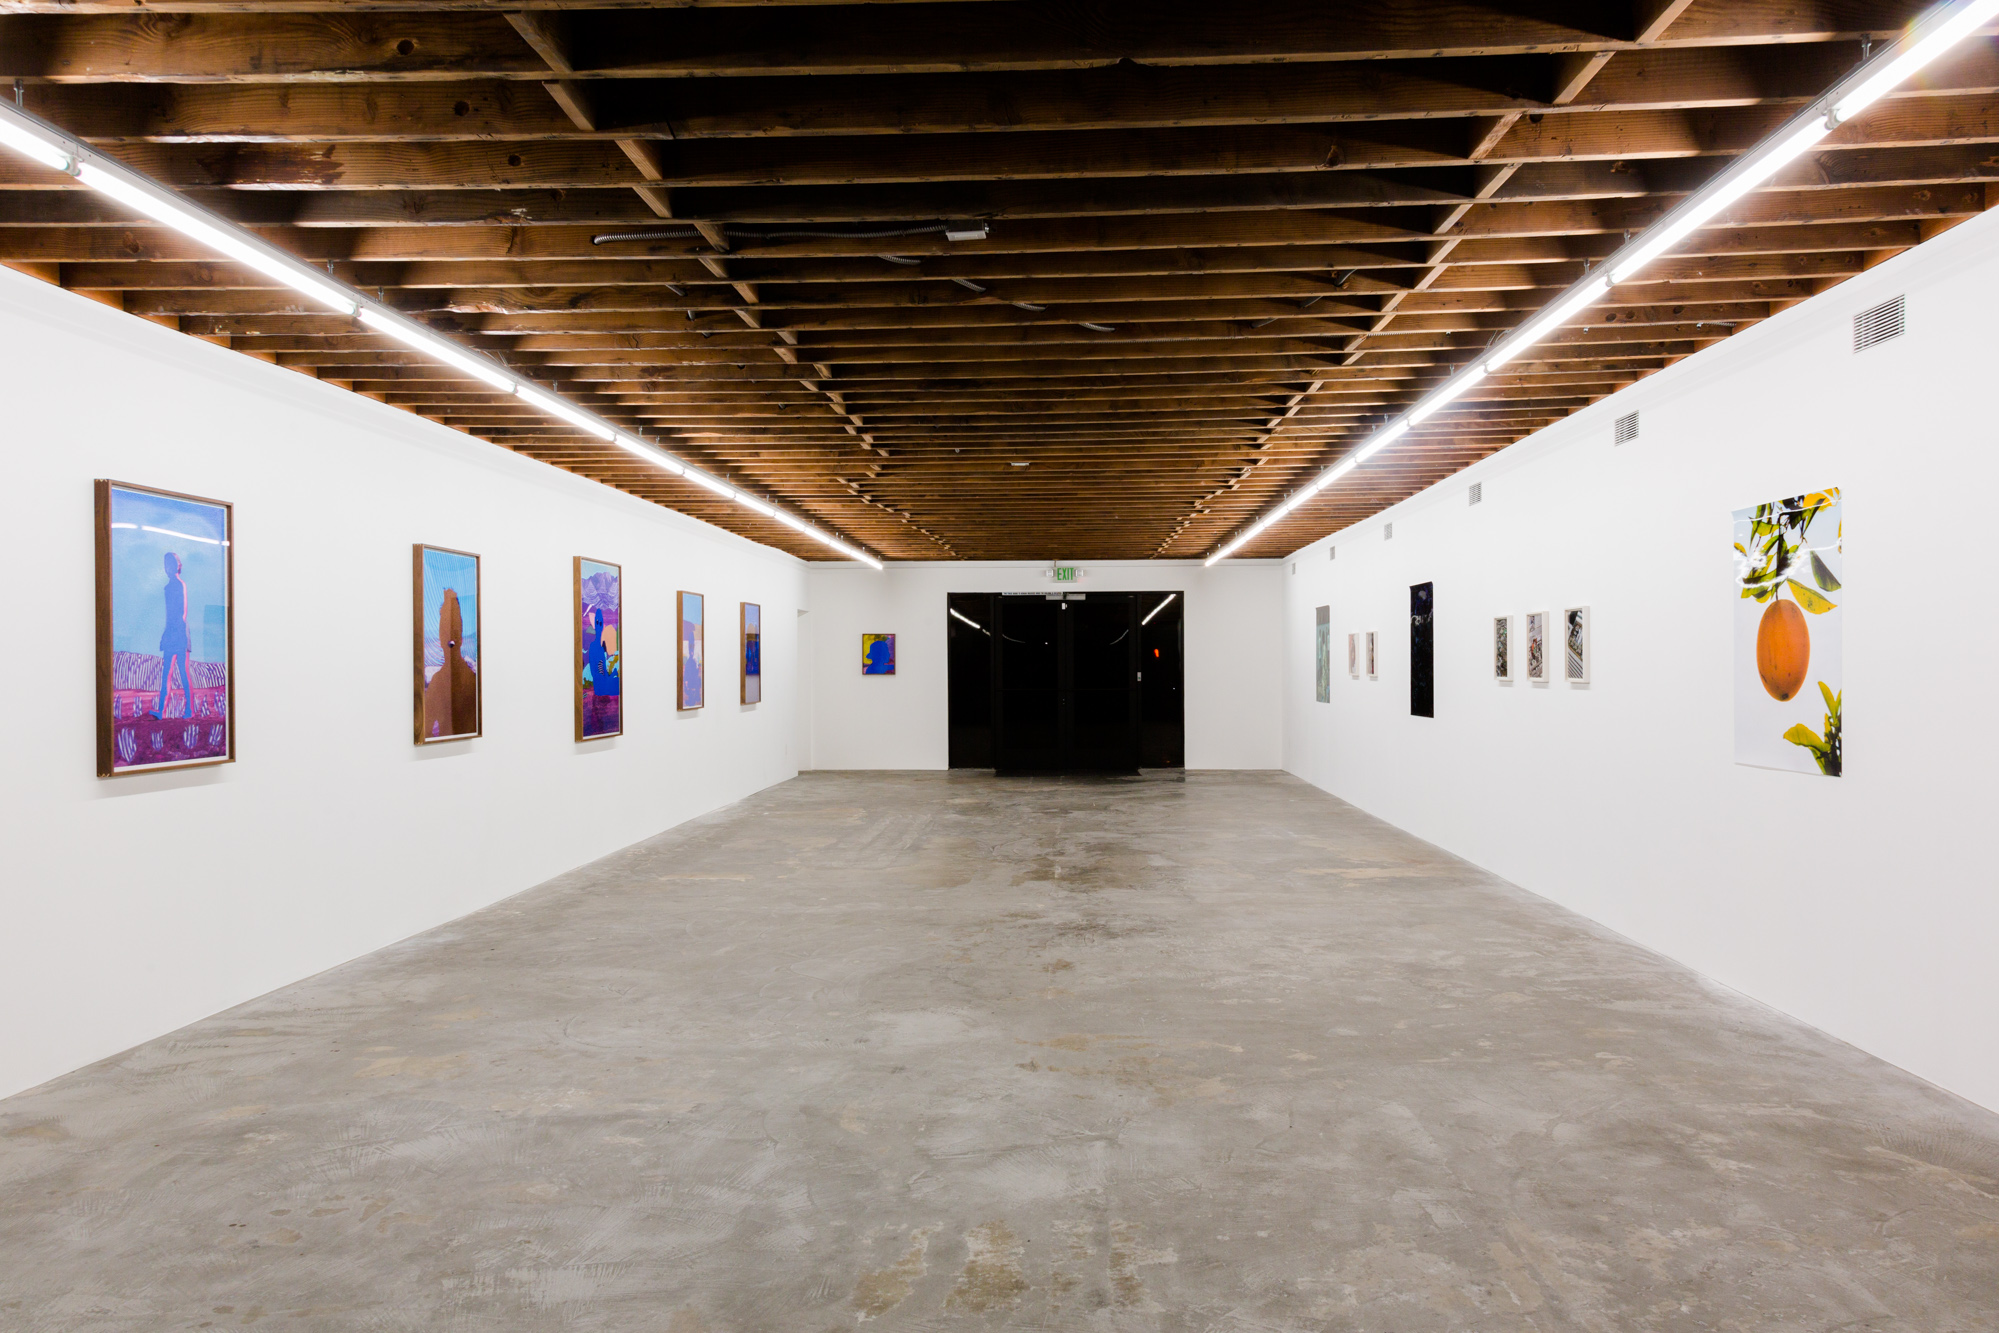 Daniel Terna and Evan Whale_LY Gallery_Exhibition Views_Overall_2019_websize-7.jpg